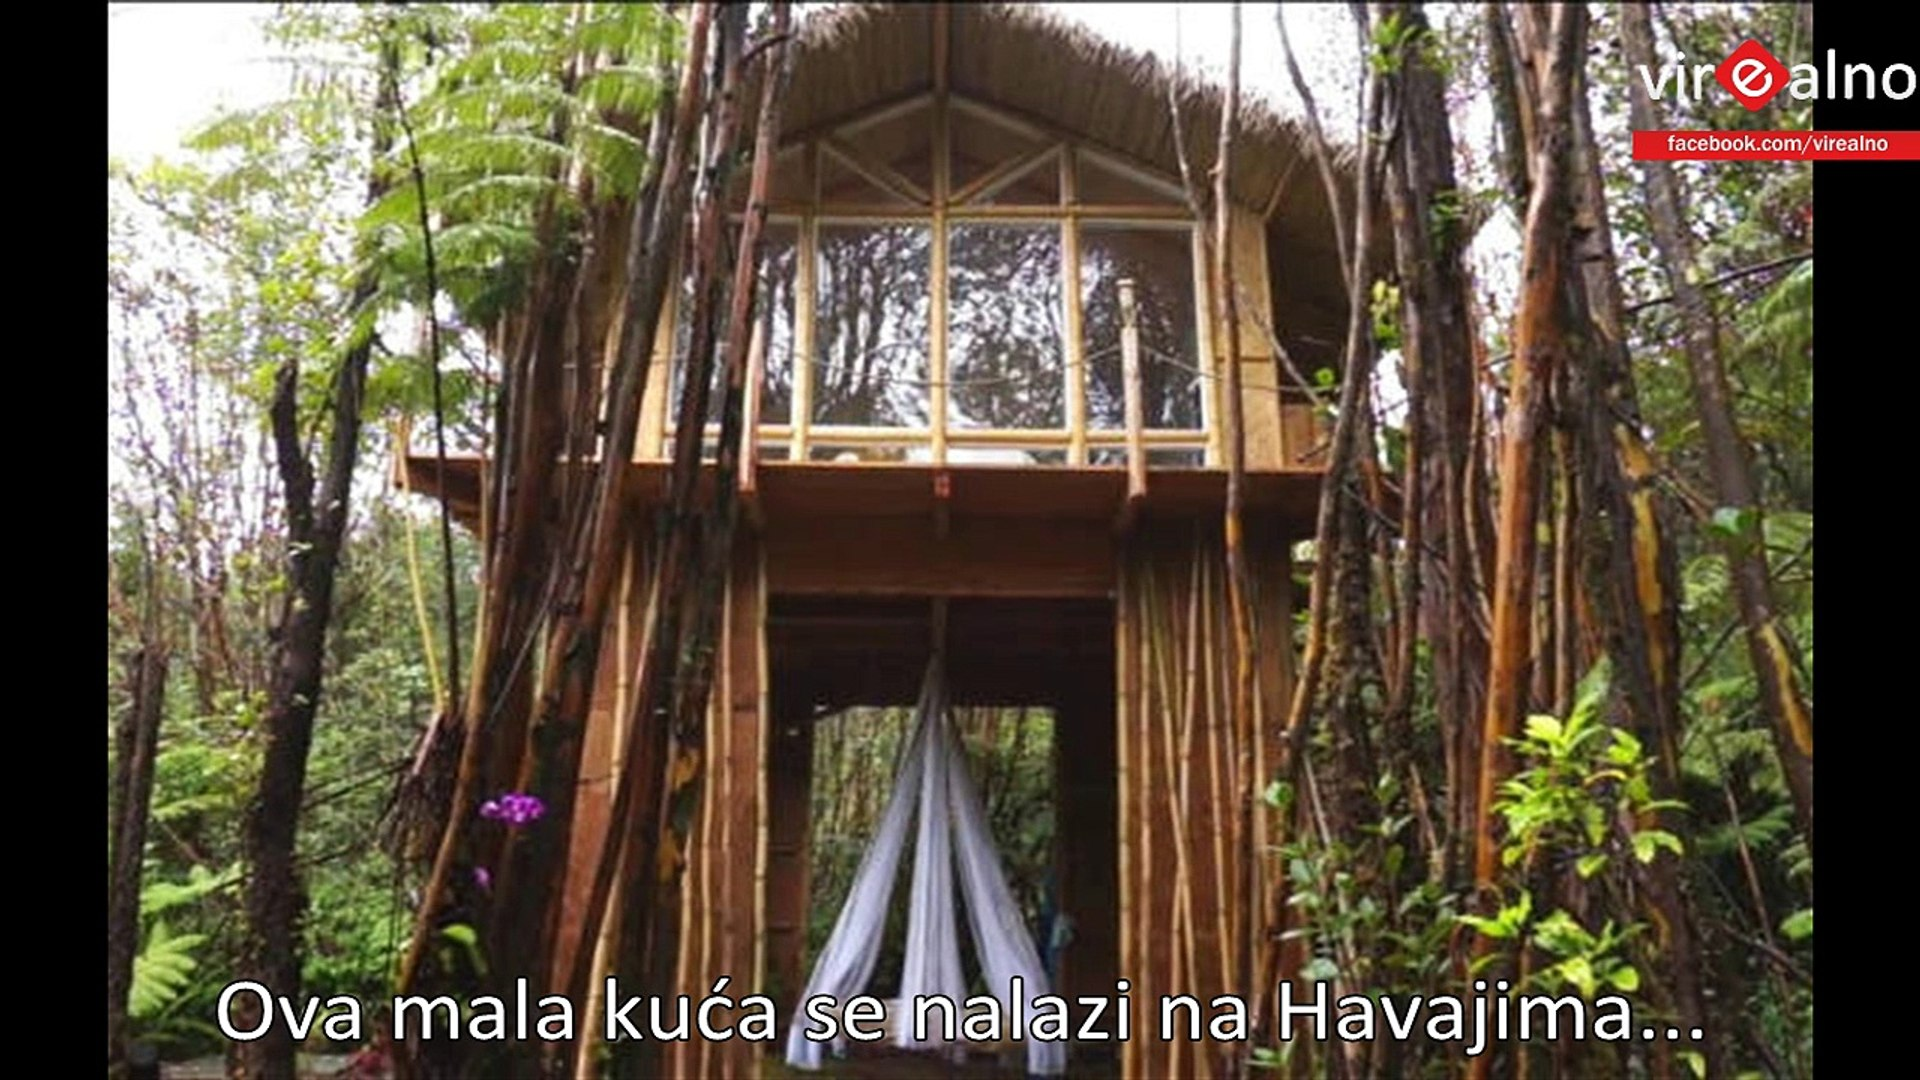 She Built A 230-Sq.-Ft. Tiny House In the Hawaiian Jungle For Just $11,000